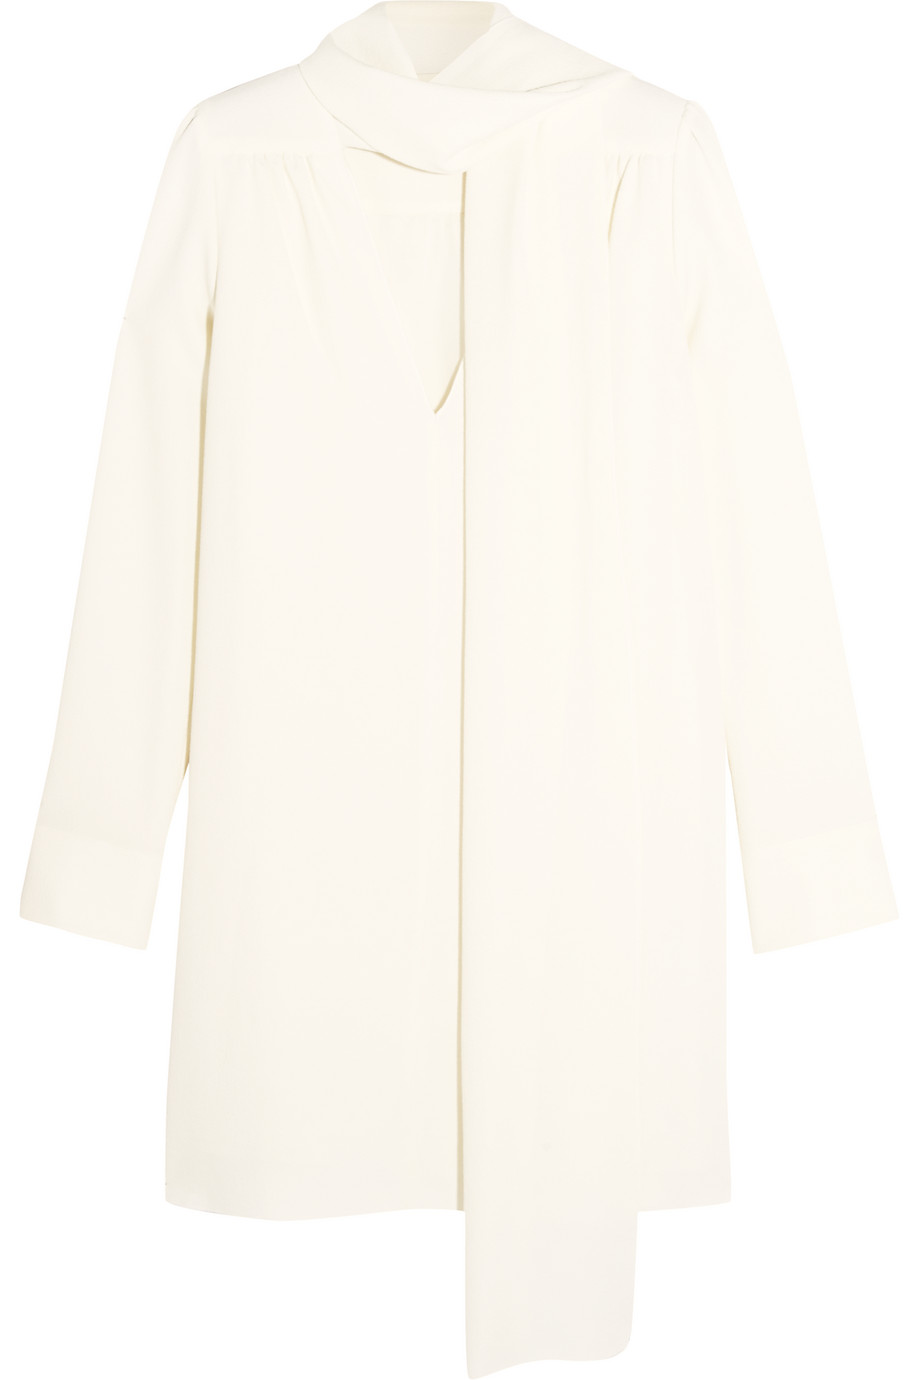 See by Chloé Pussy-Bow Stretch-Crepe Mini Dress, White, Women's, Size: 44